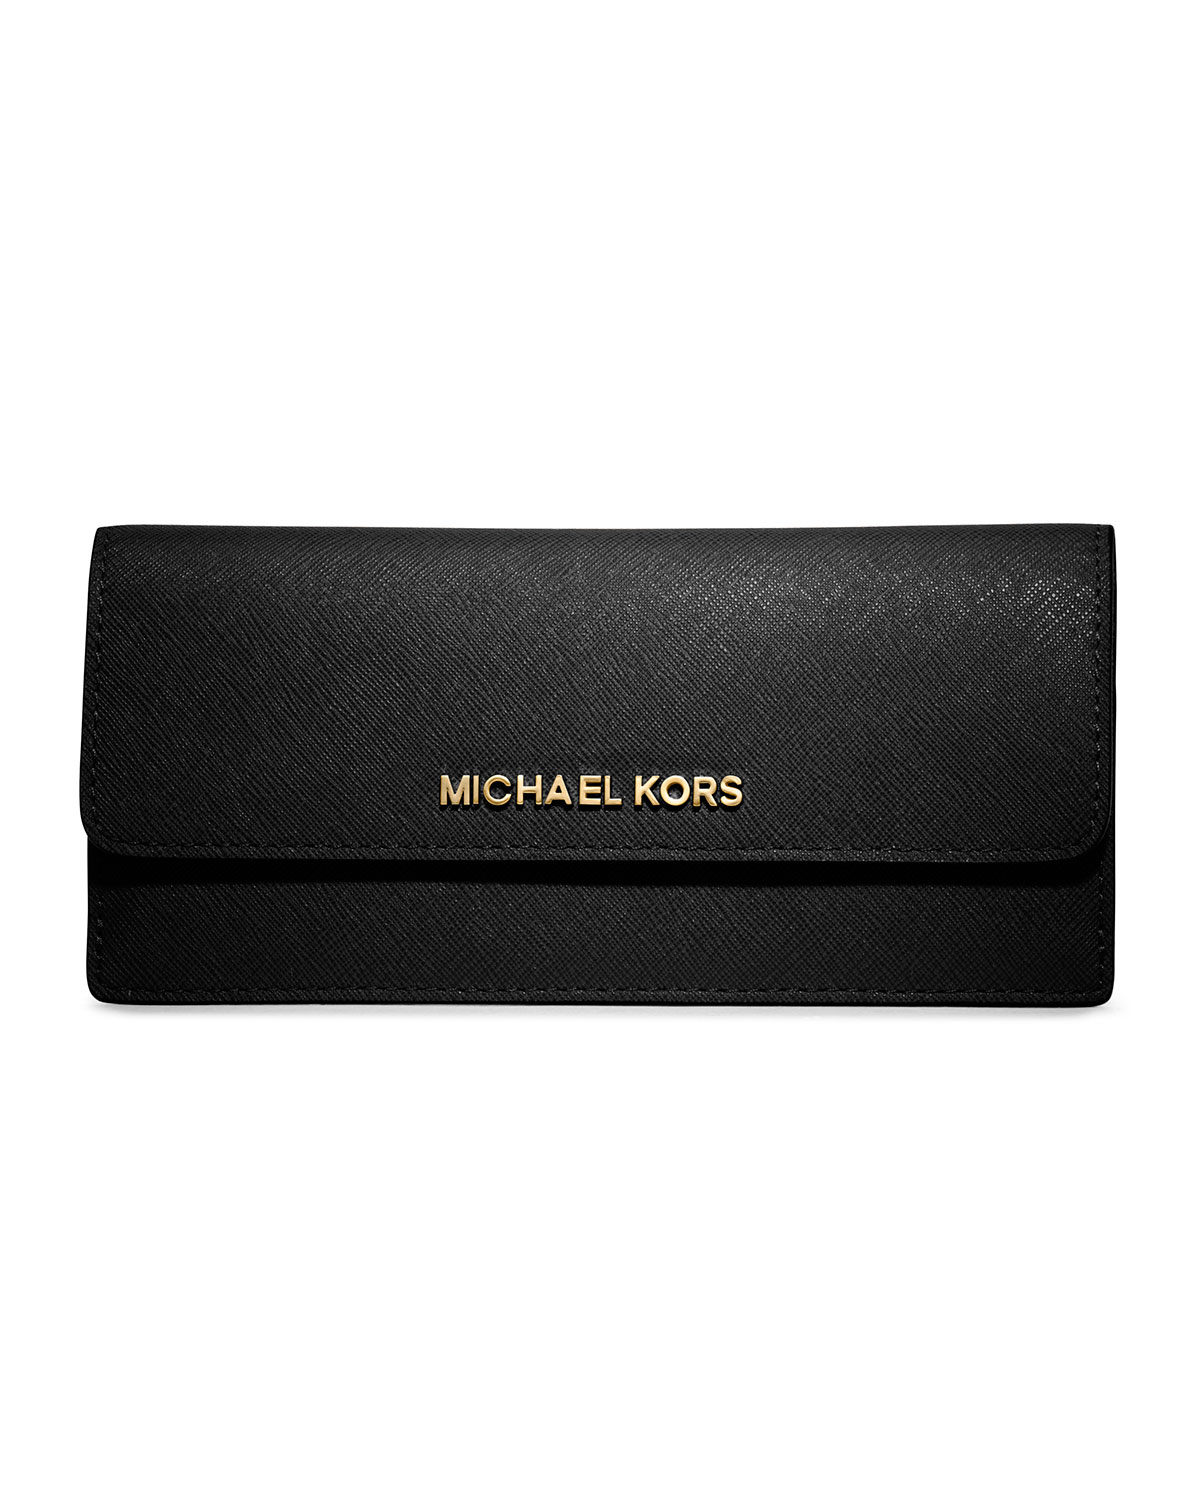 c10eac7b0a94 Black Michael Kors Wallet Sale | Stanford Center for Opportunity ...